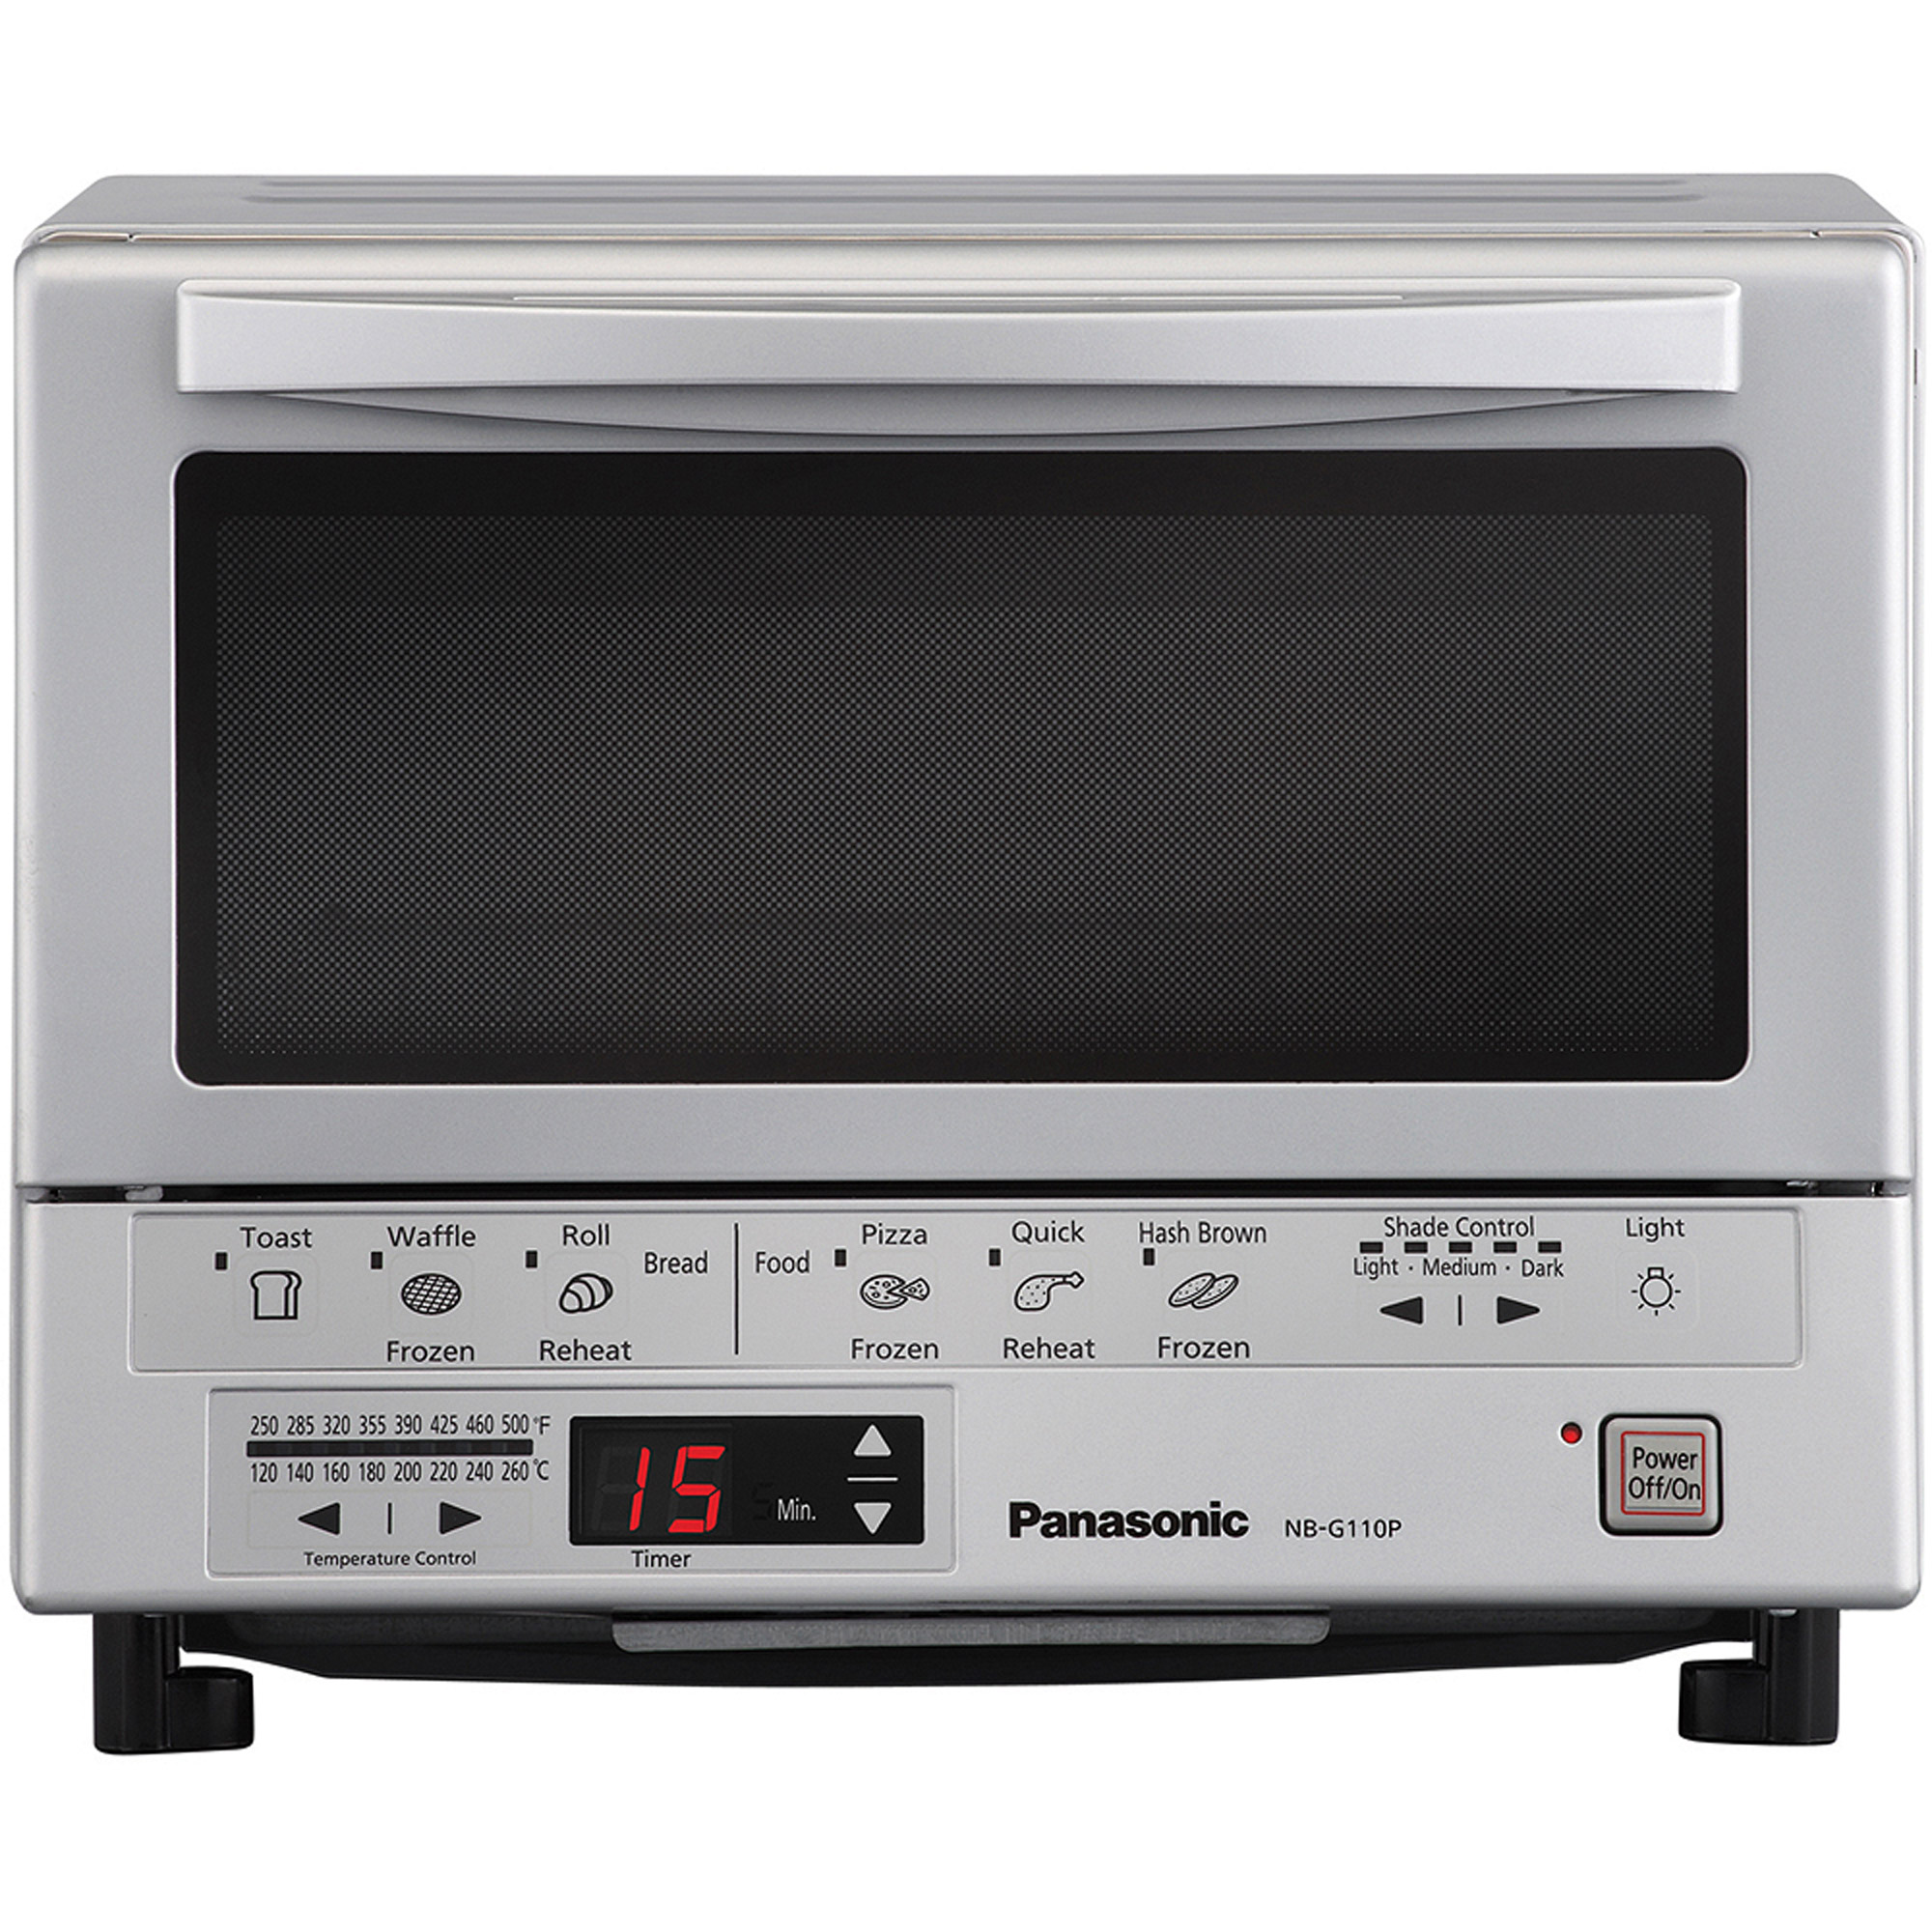 mu kitchen product galaxy shop online panasonic oven mauritius and nt toaster sale in